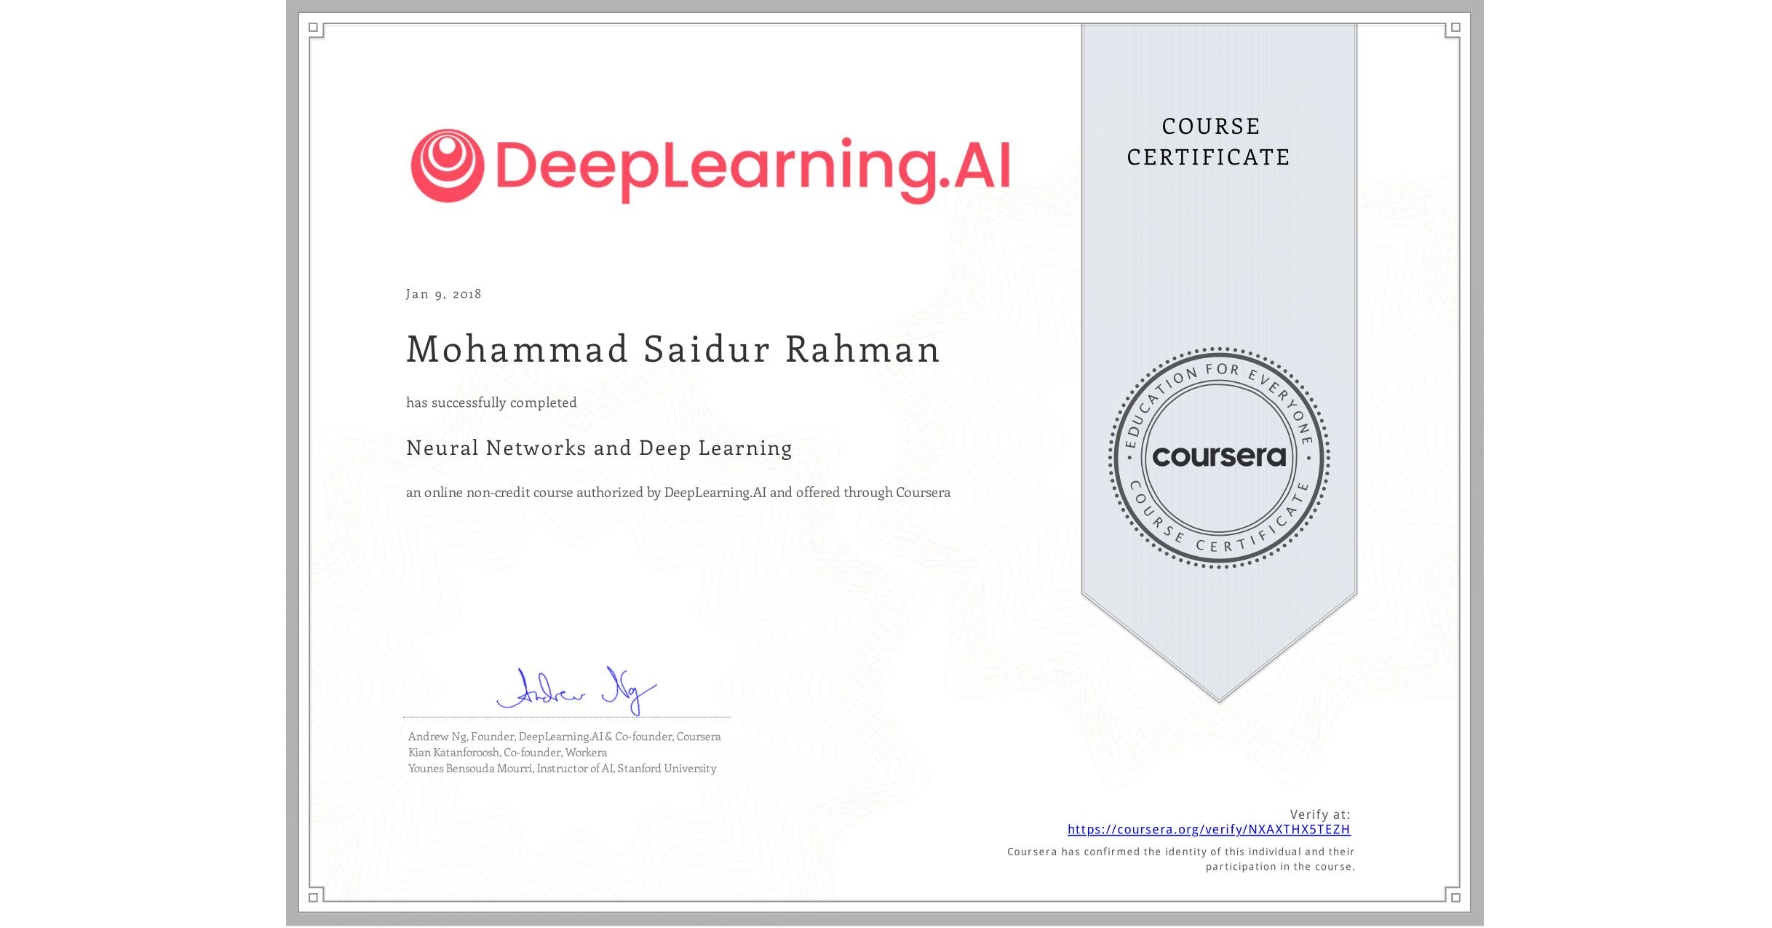 View certificate for Mohammad Saidur  Rahman, Neural Networks and Deep Learning, an online non-credit course authorized by DeepLearning.AI and offered through Coursera